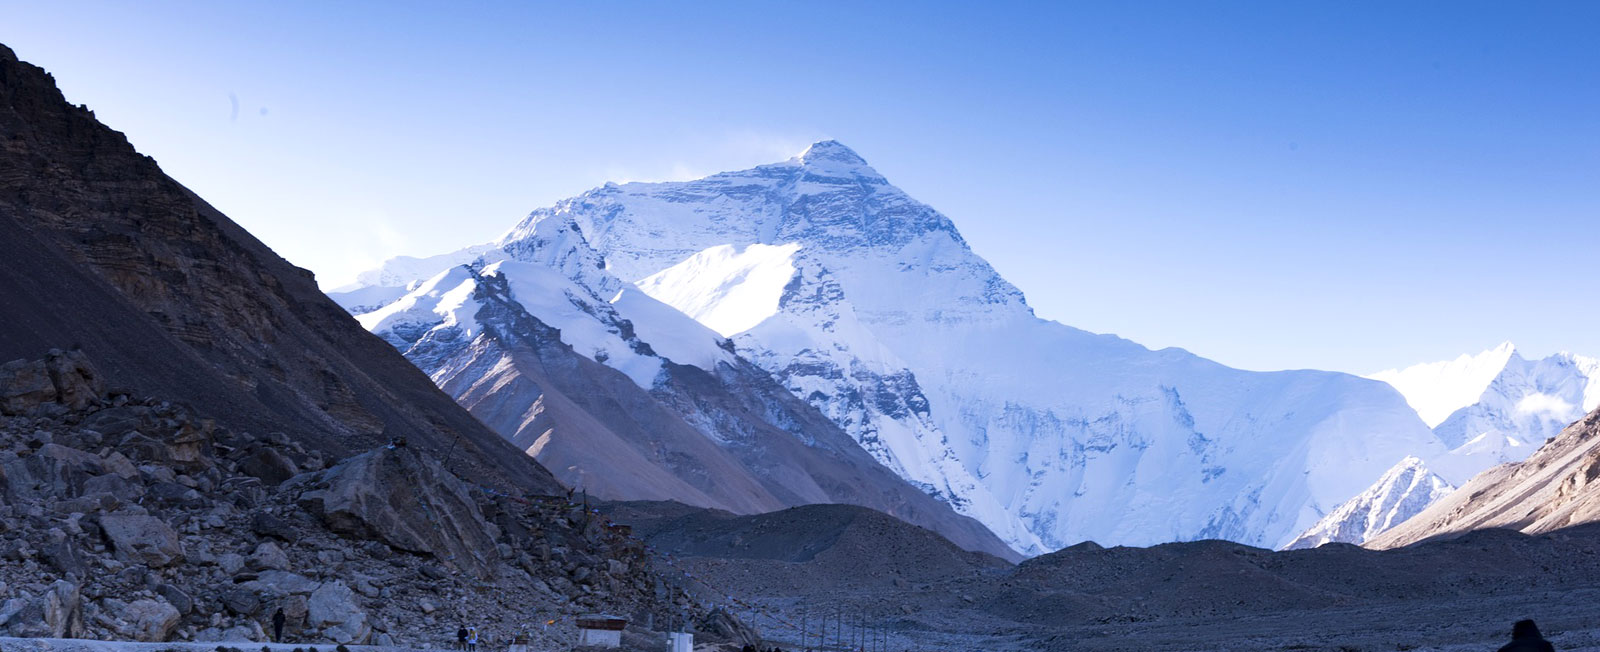 Mt Everest Trek